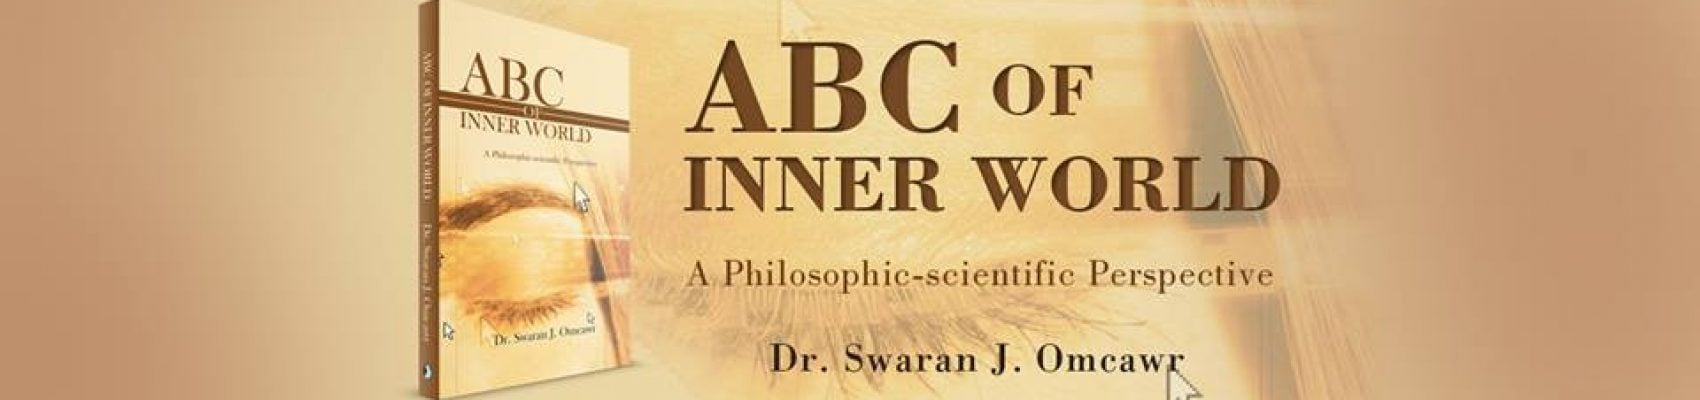 ABC of Inner World